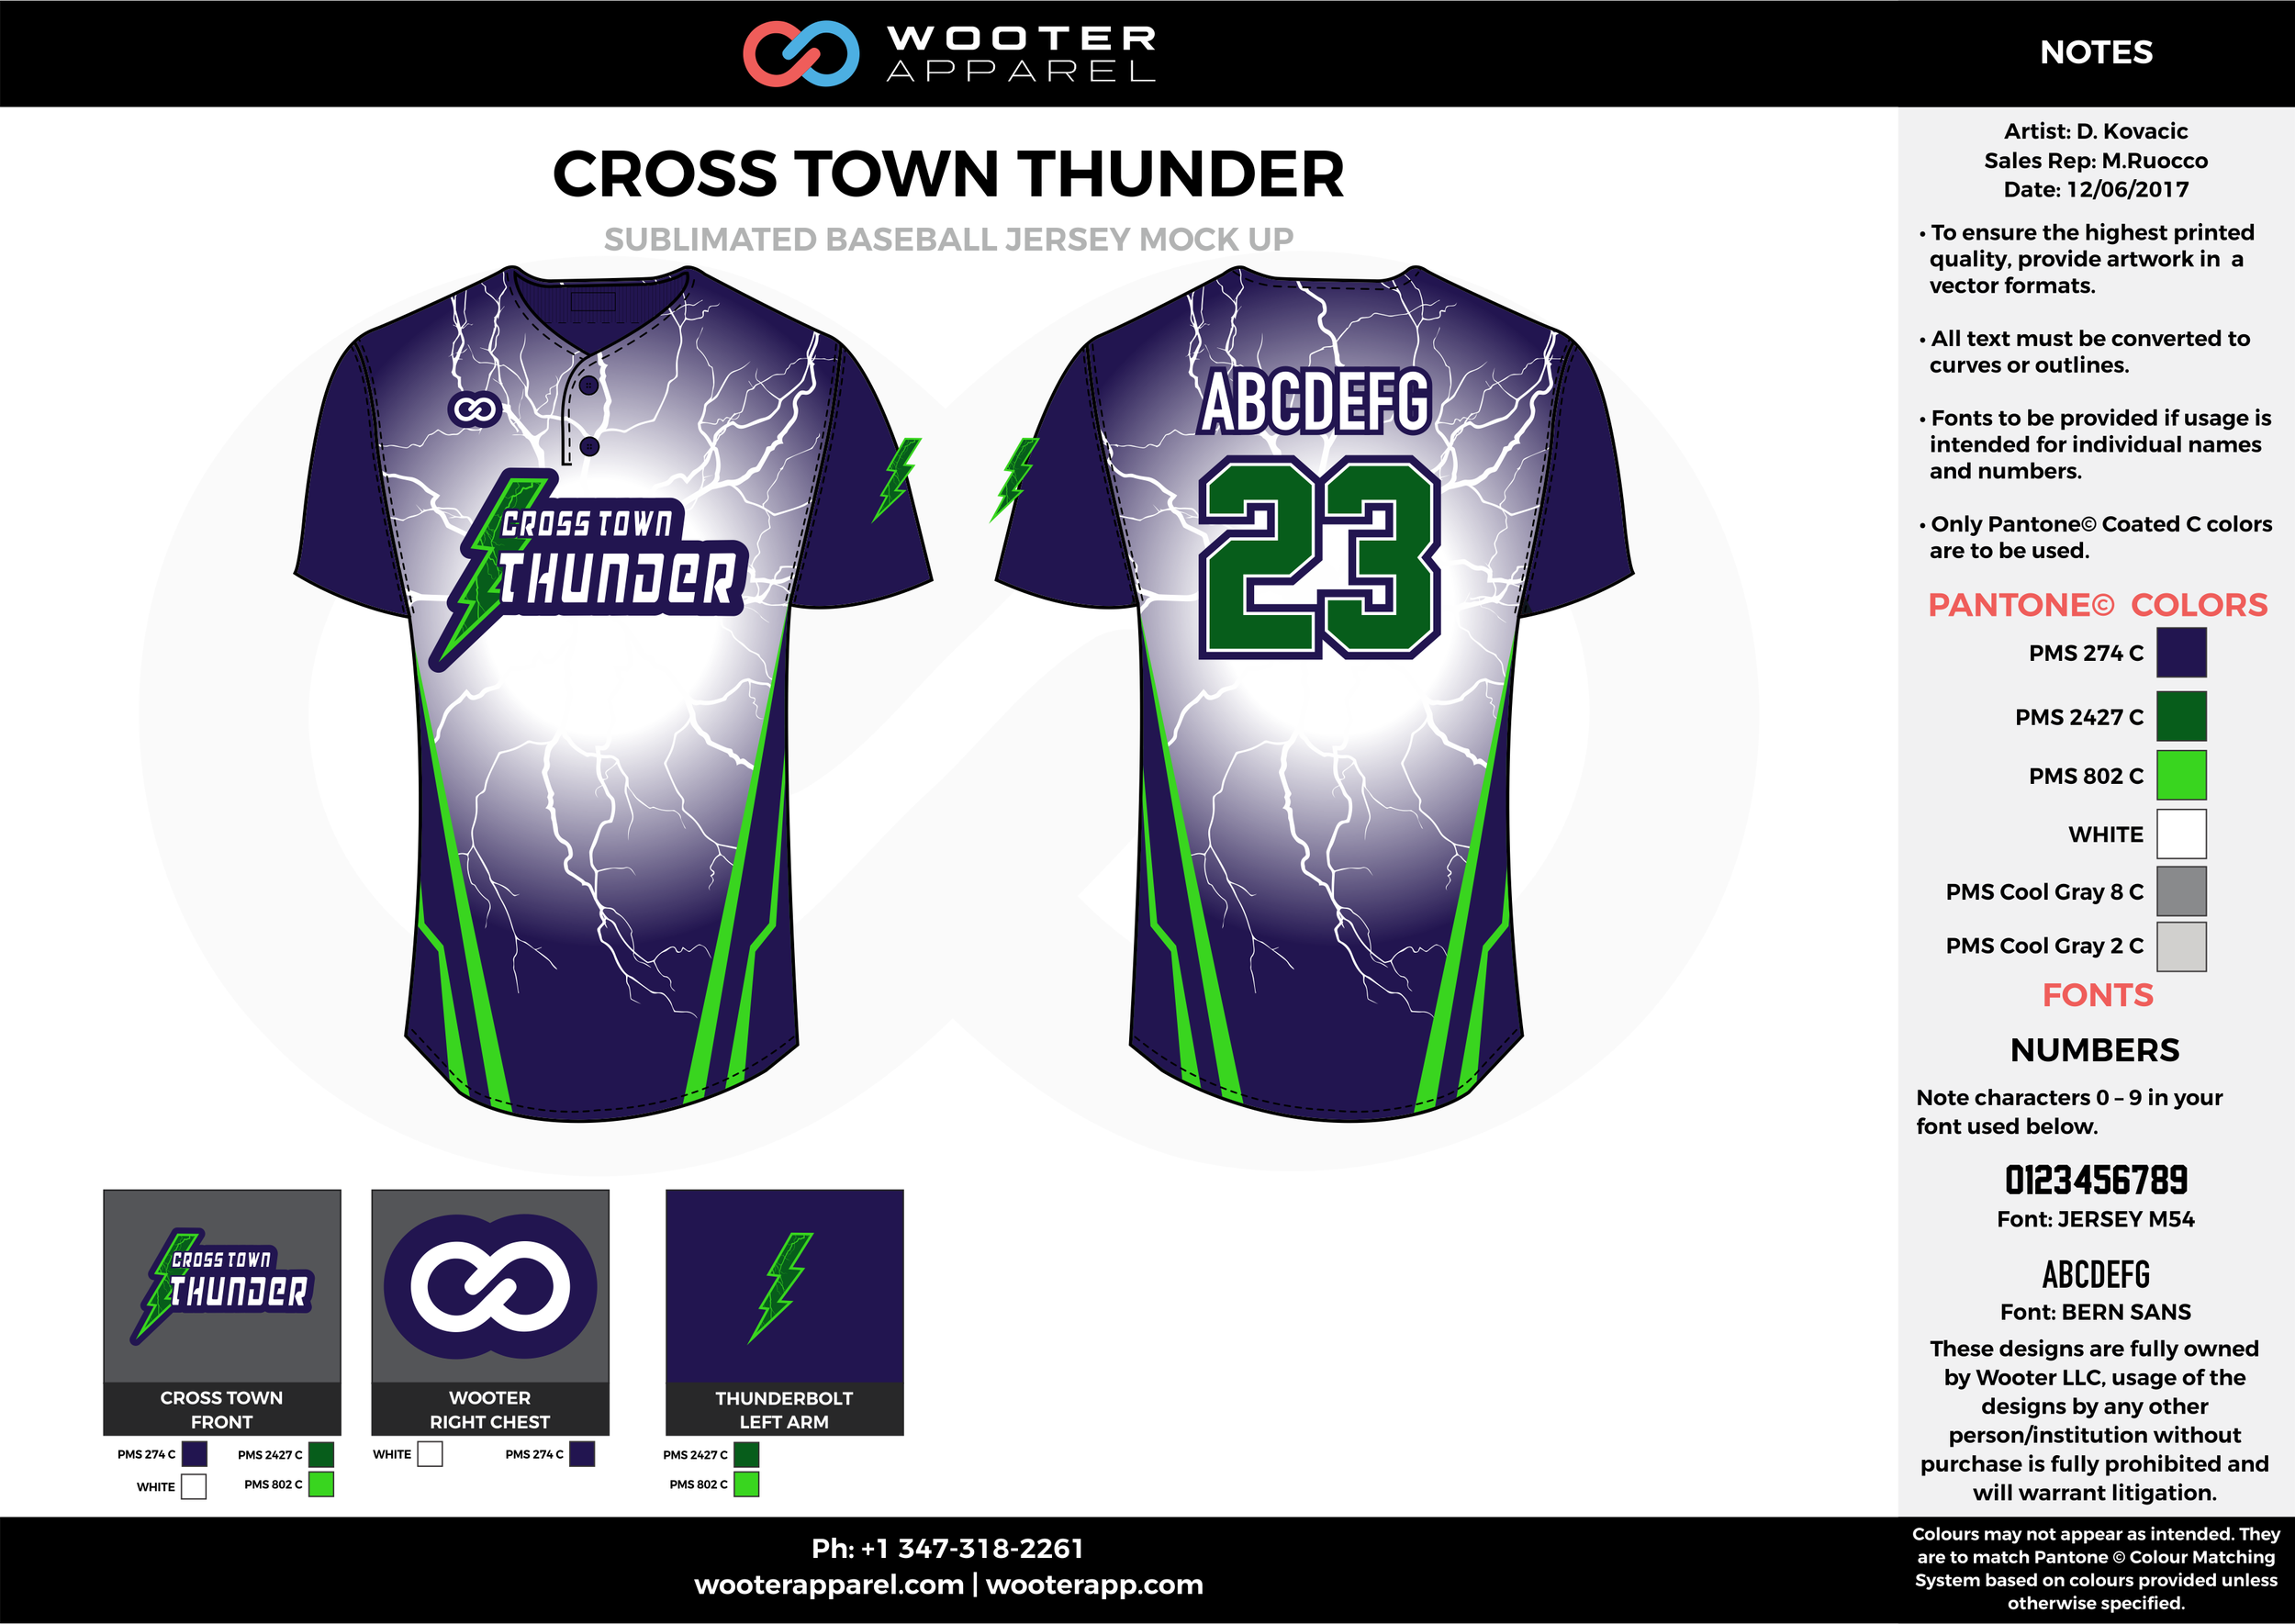 CROSS TOWN THUNDER blue green gray white baseball uniforms jerseys tops